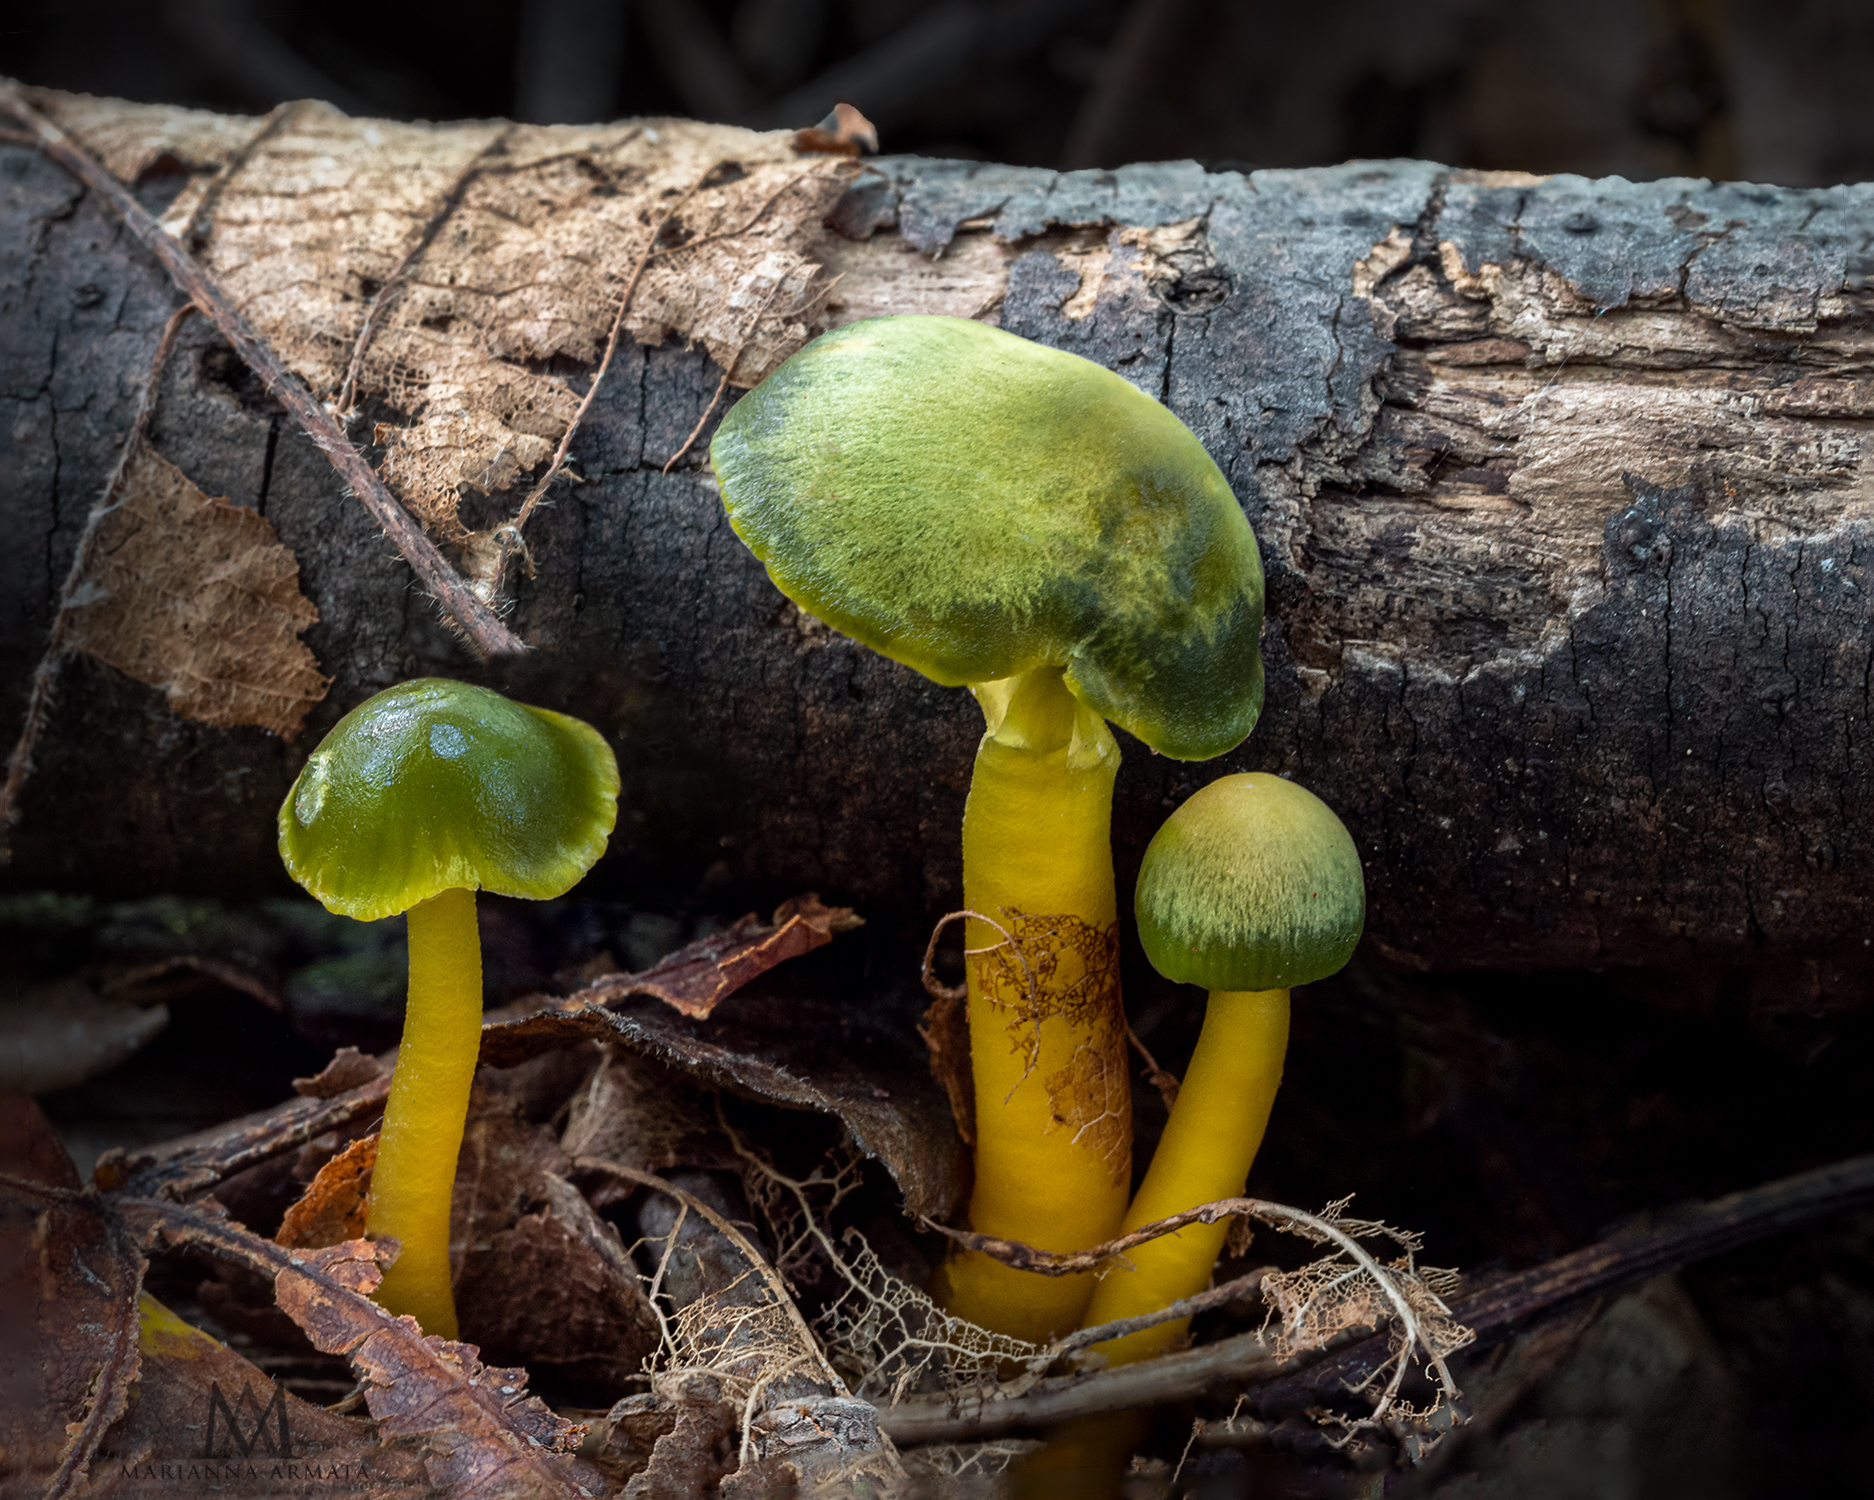 Parrot mushrooms